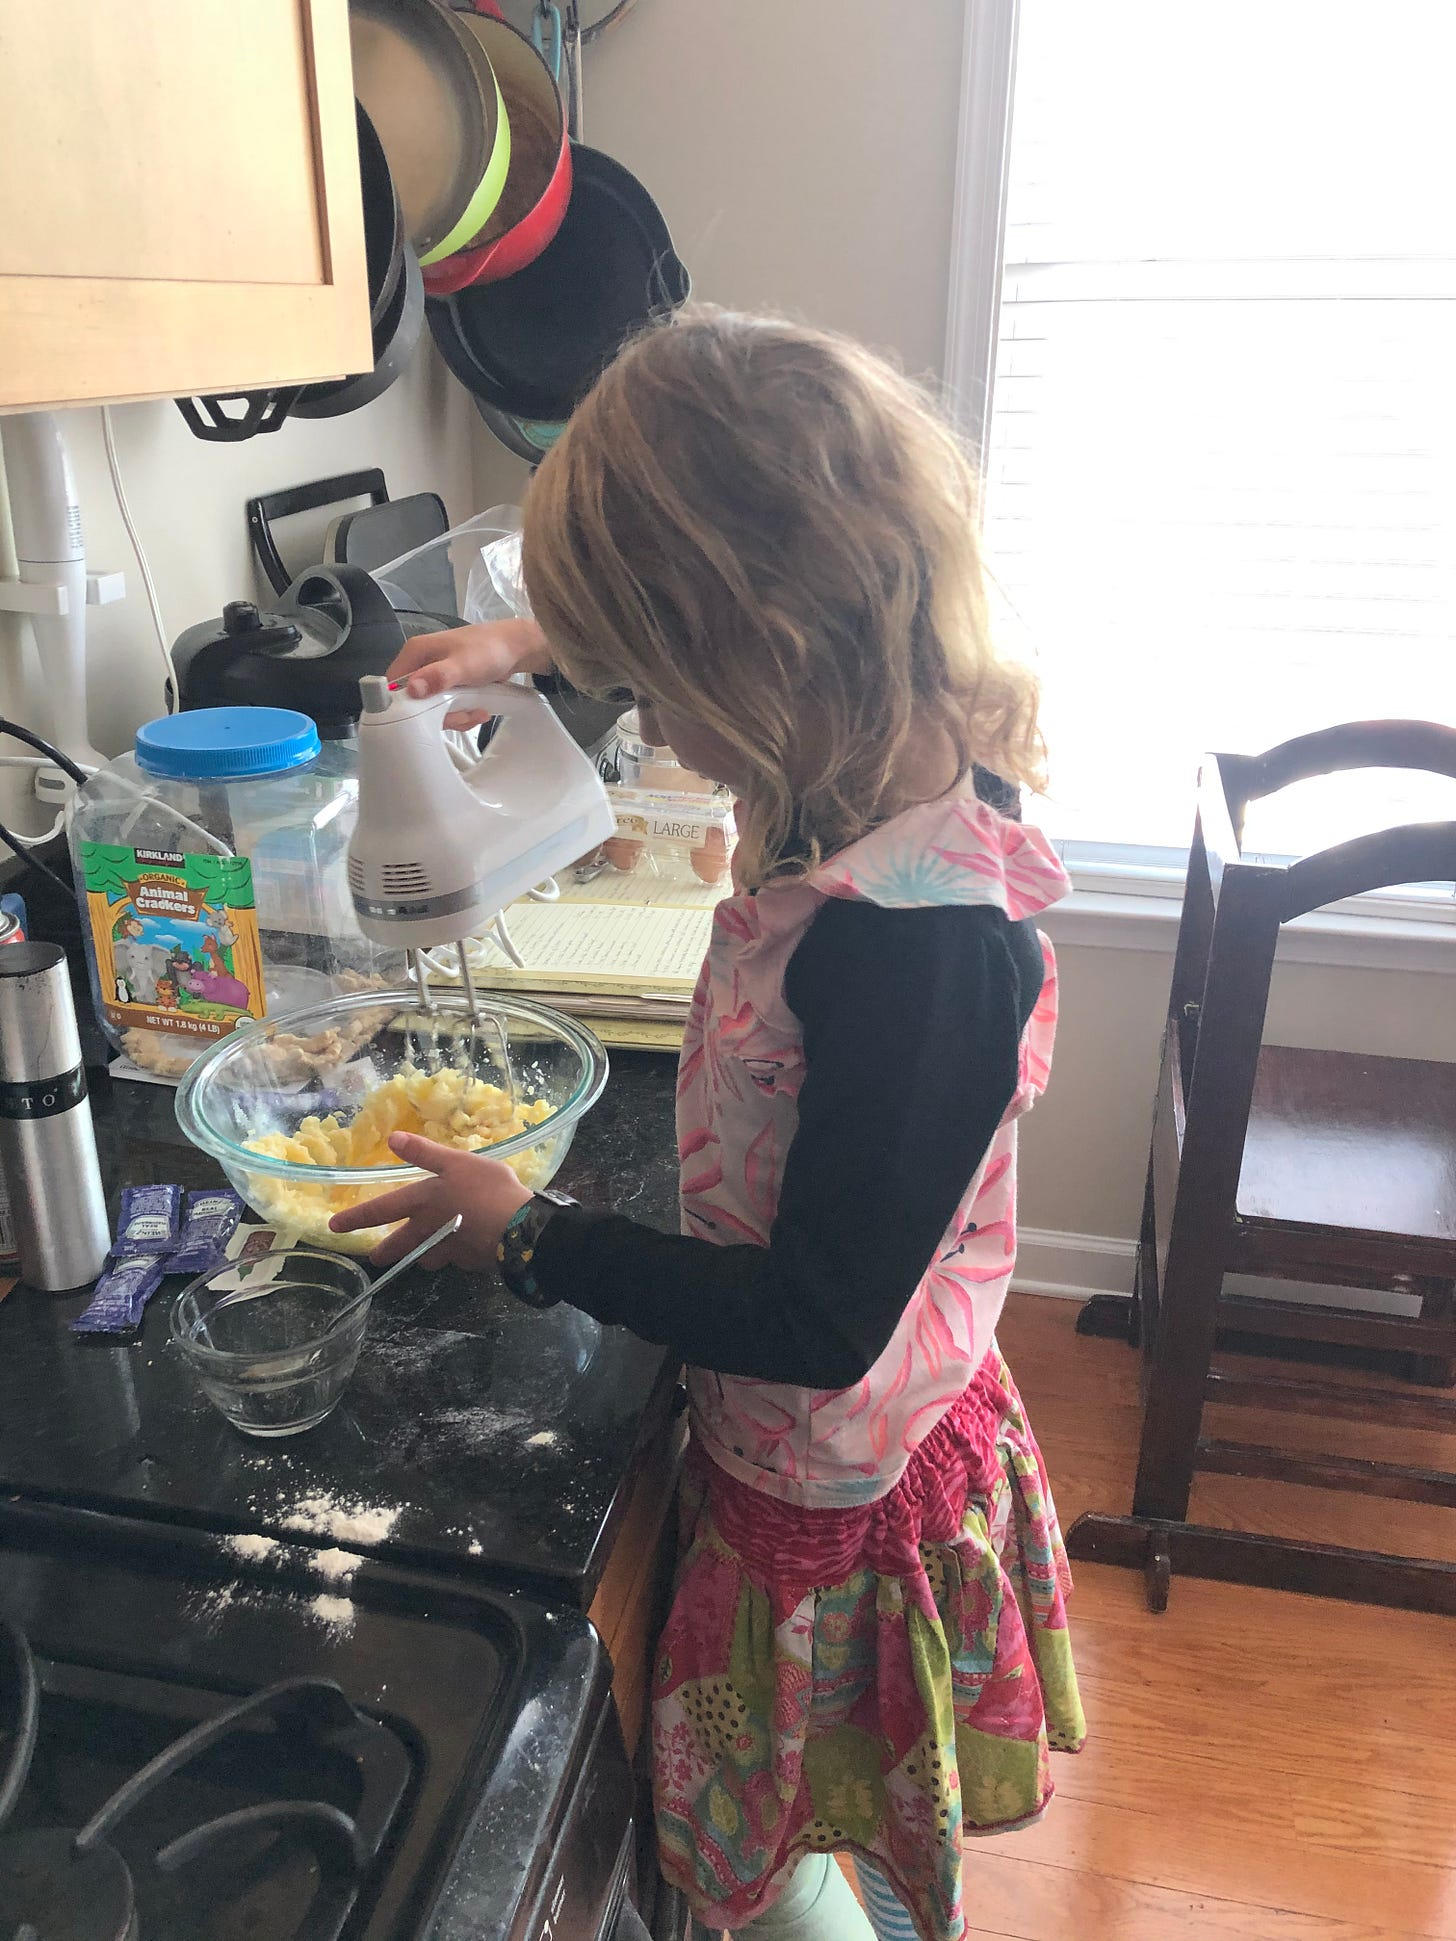 Molly stands at a counter with a mixer and a mixing bowl.